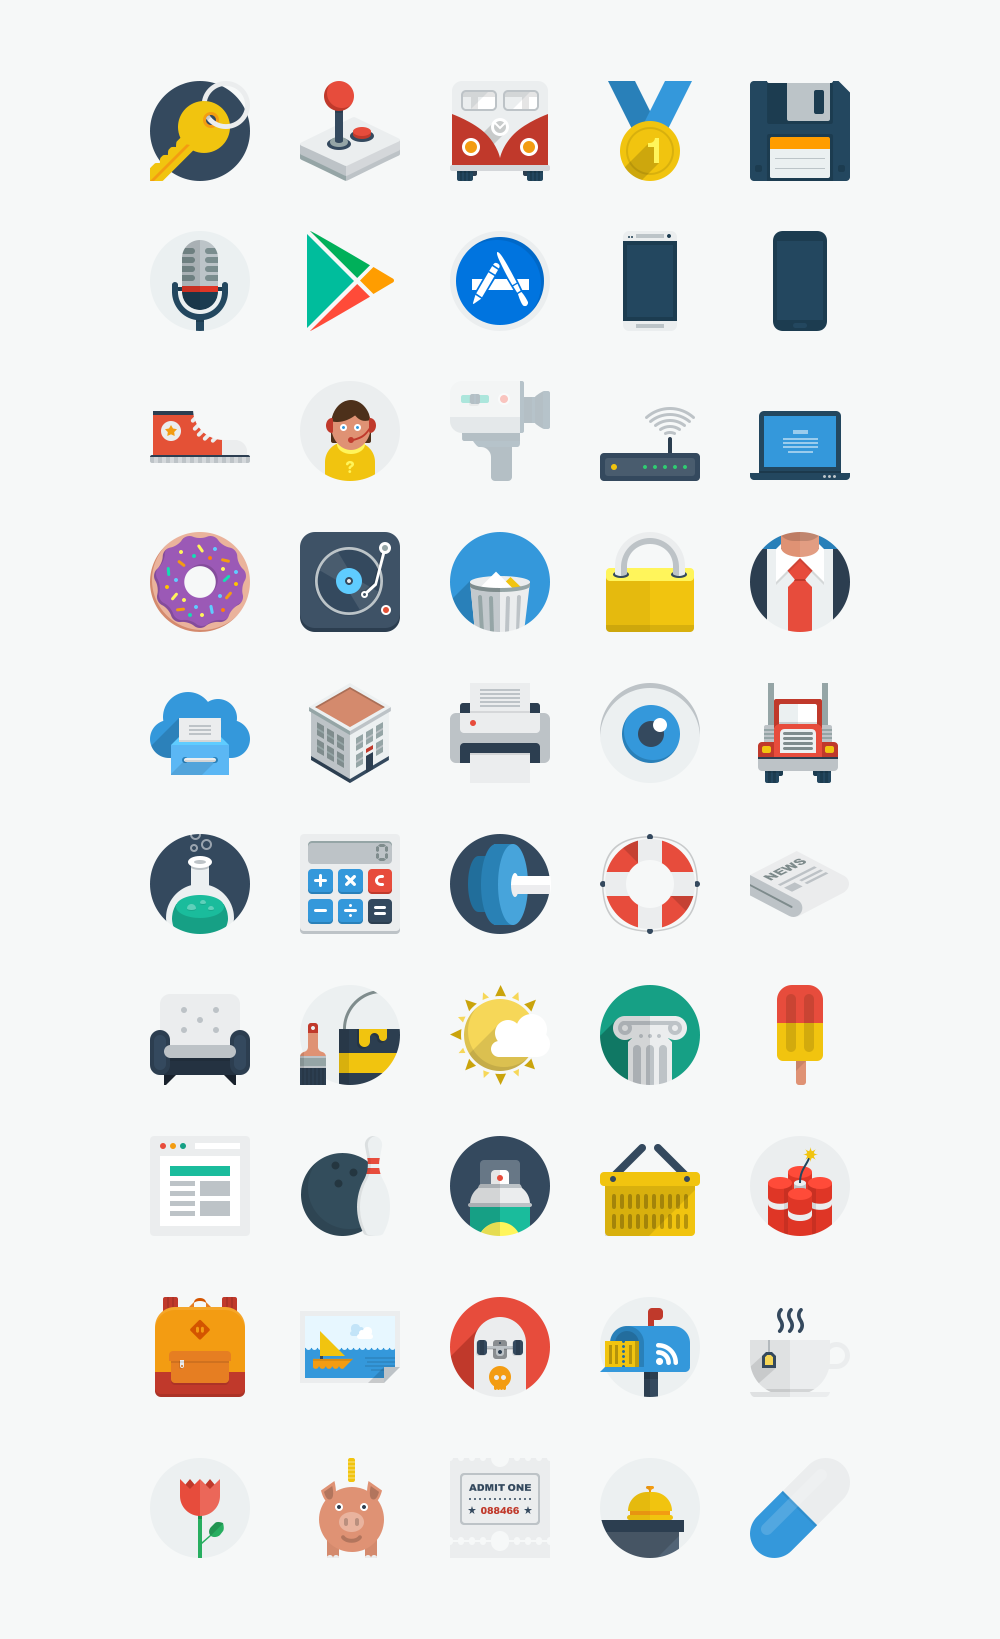 flat-ui-pro-1.2-new-icons.png by Designmodo